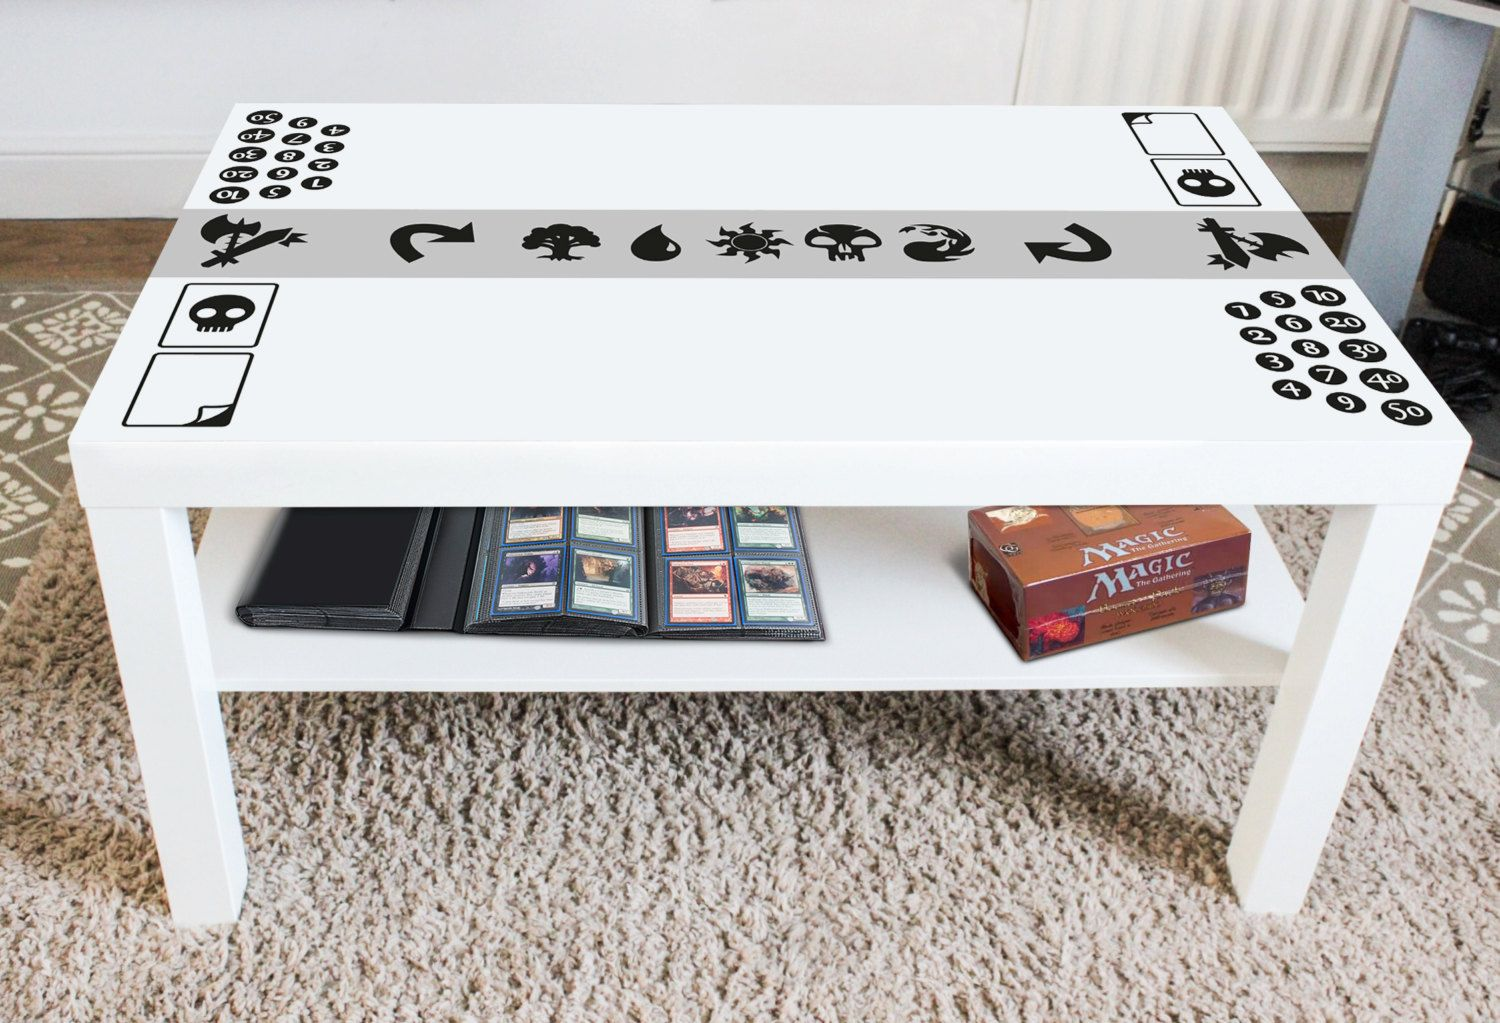 Mtg Magic The Gathering Vinyl Decal Create Your Own Game Table Play Mat Home Decor Trading Card Magic The Gathering Magic The Gathering Cards The Gathering